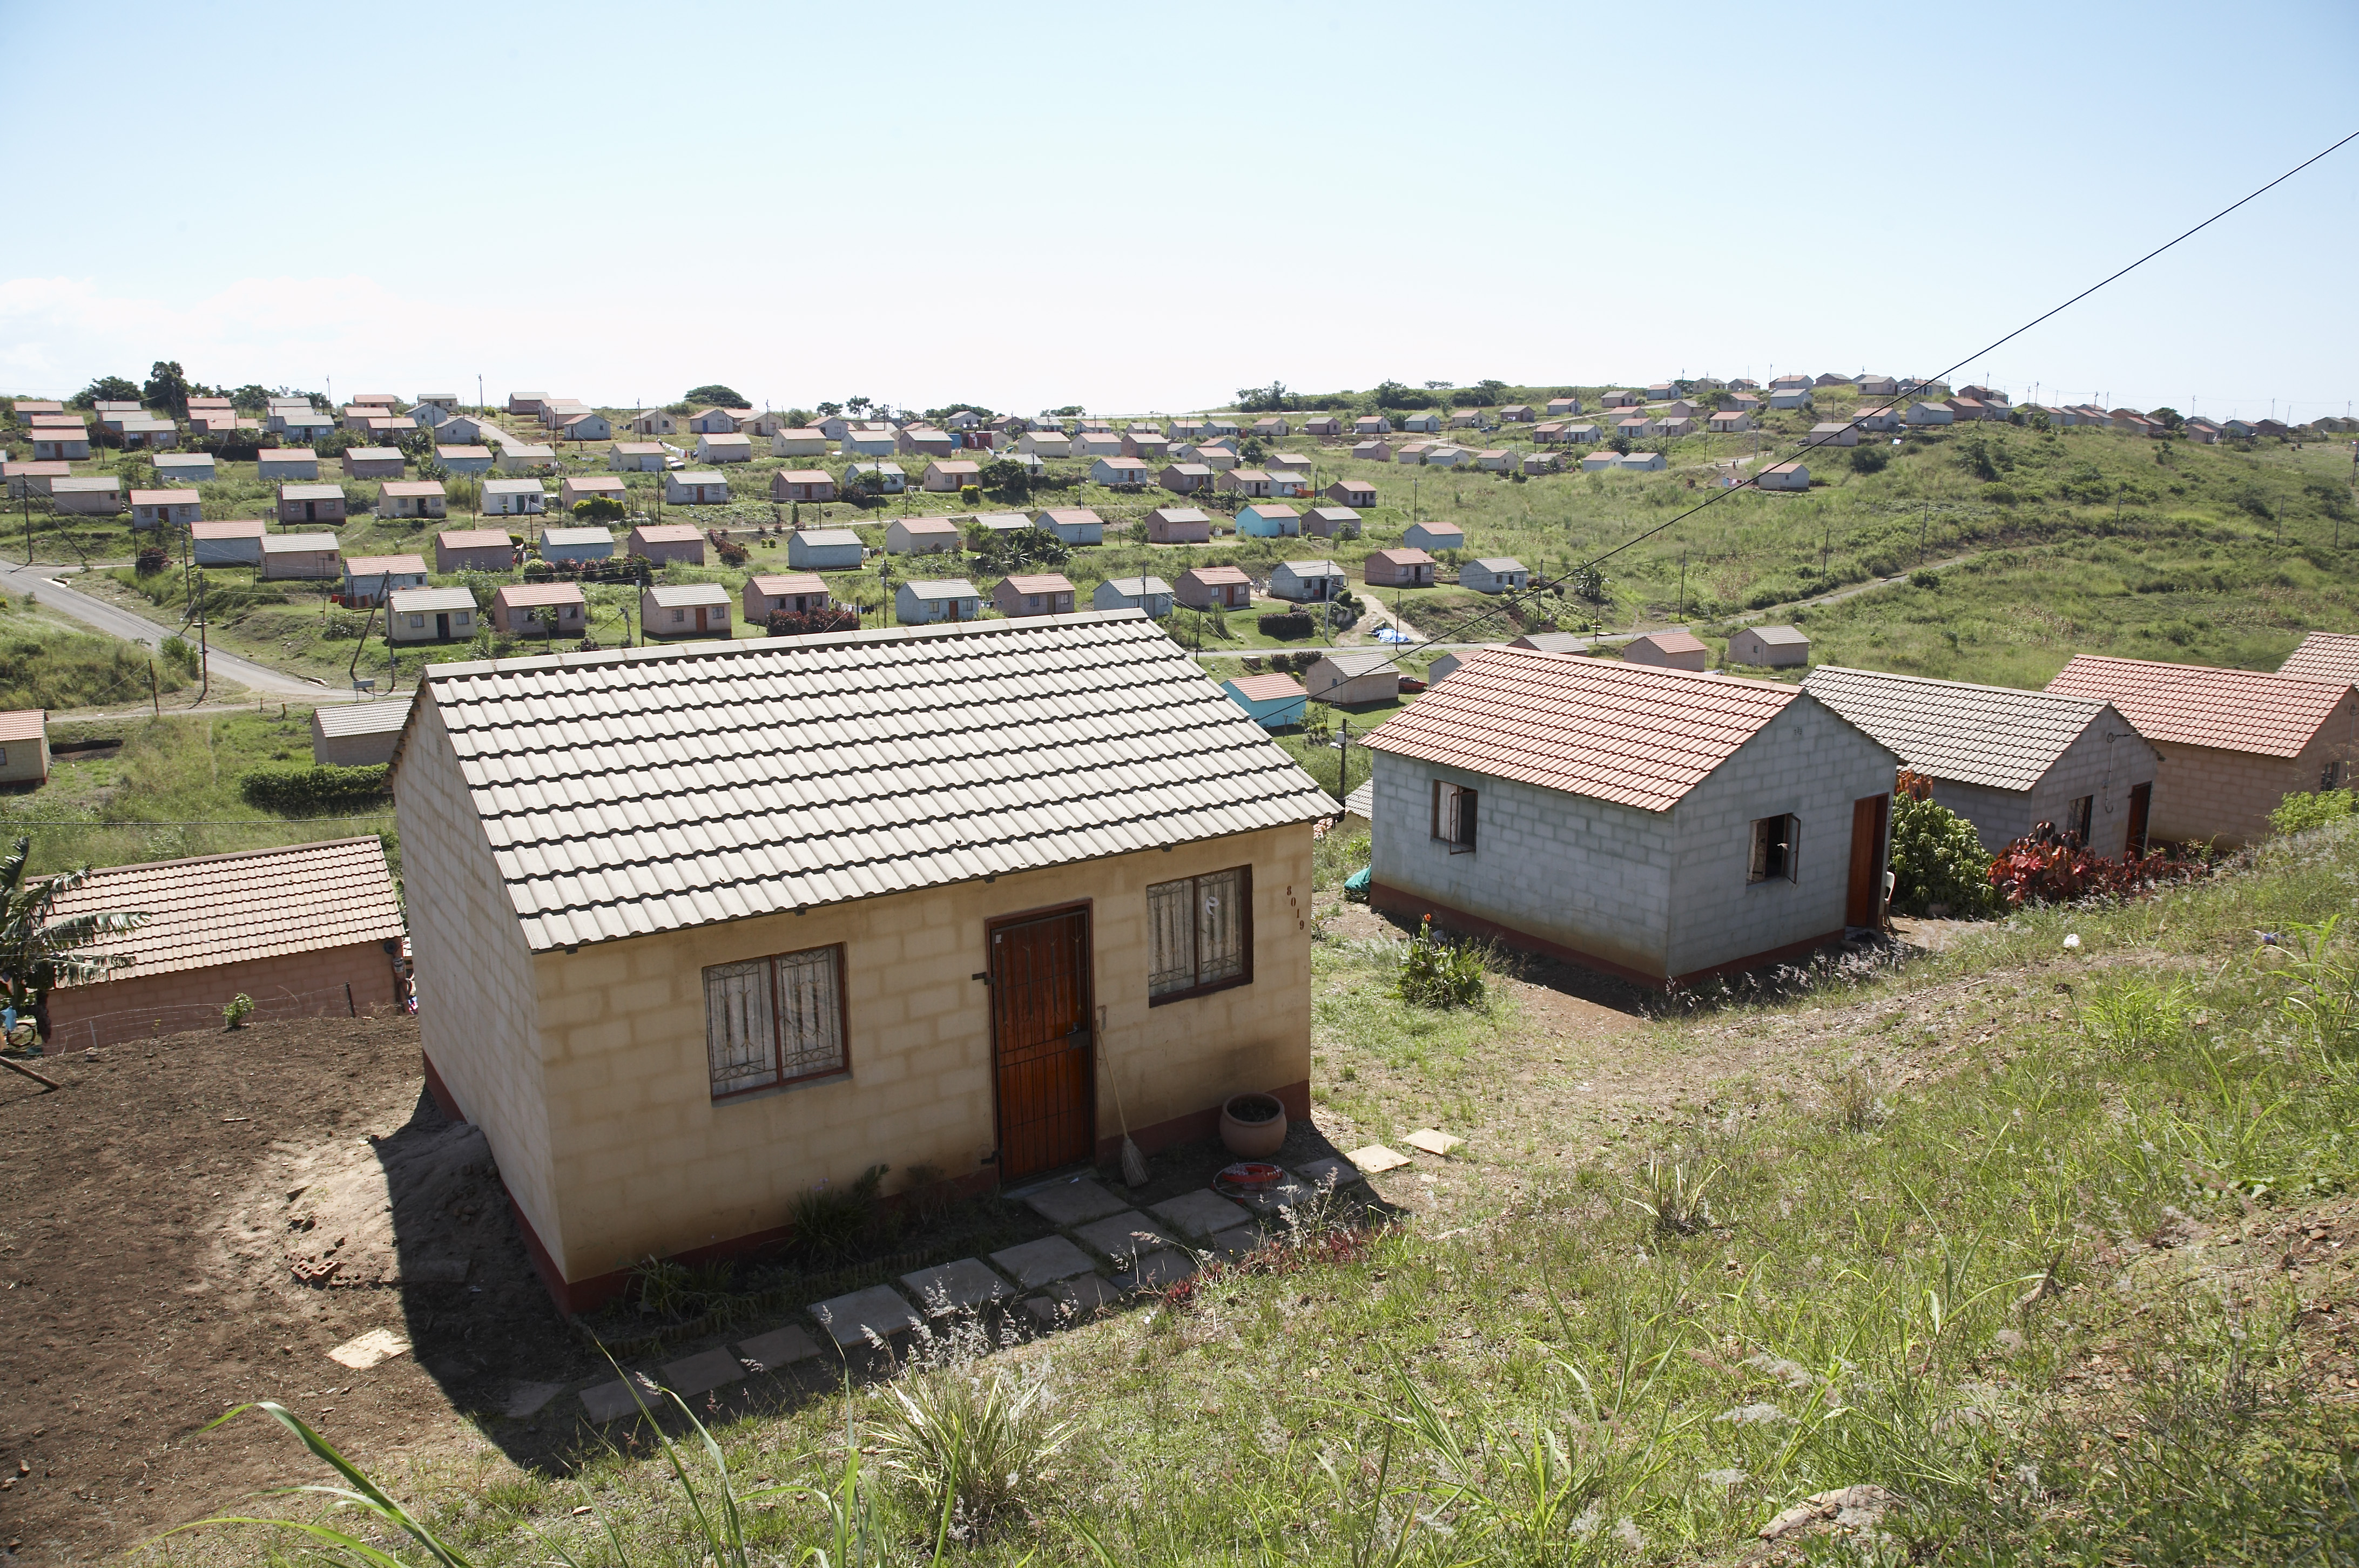 Photo library: Development 7   Brand South Africa